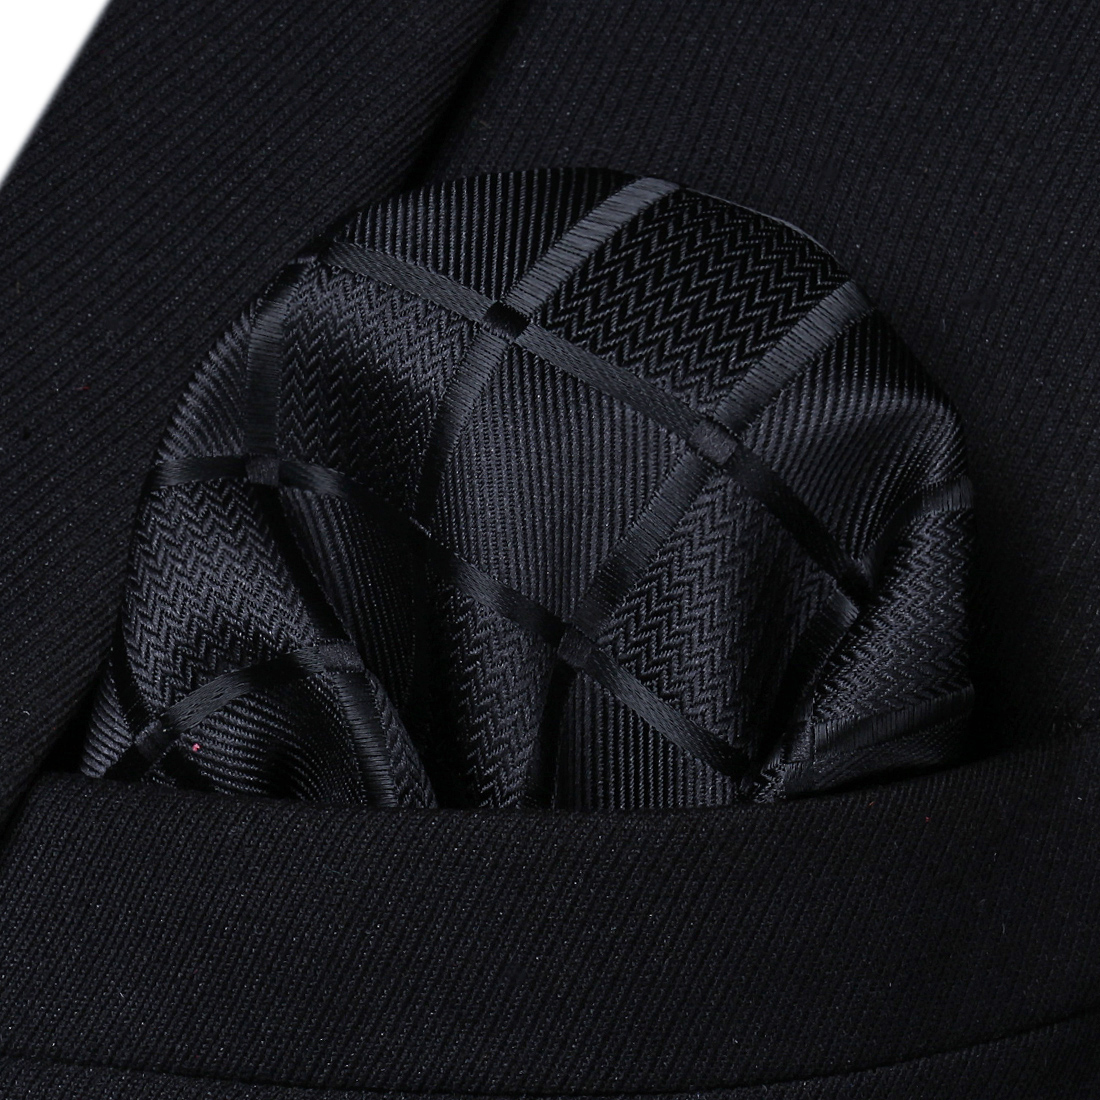 HC423L Black Check Men Silk Party Handkerchief Pocket Square Hanky